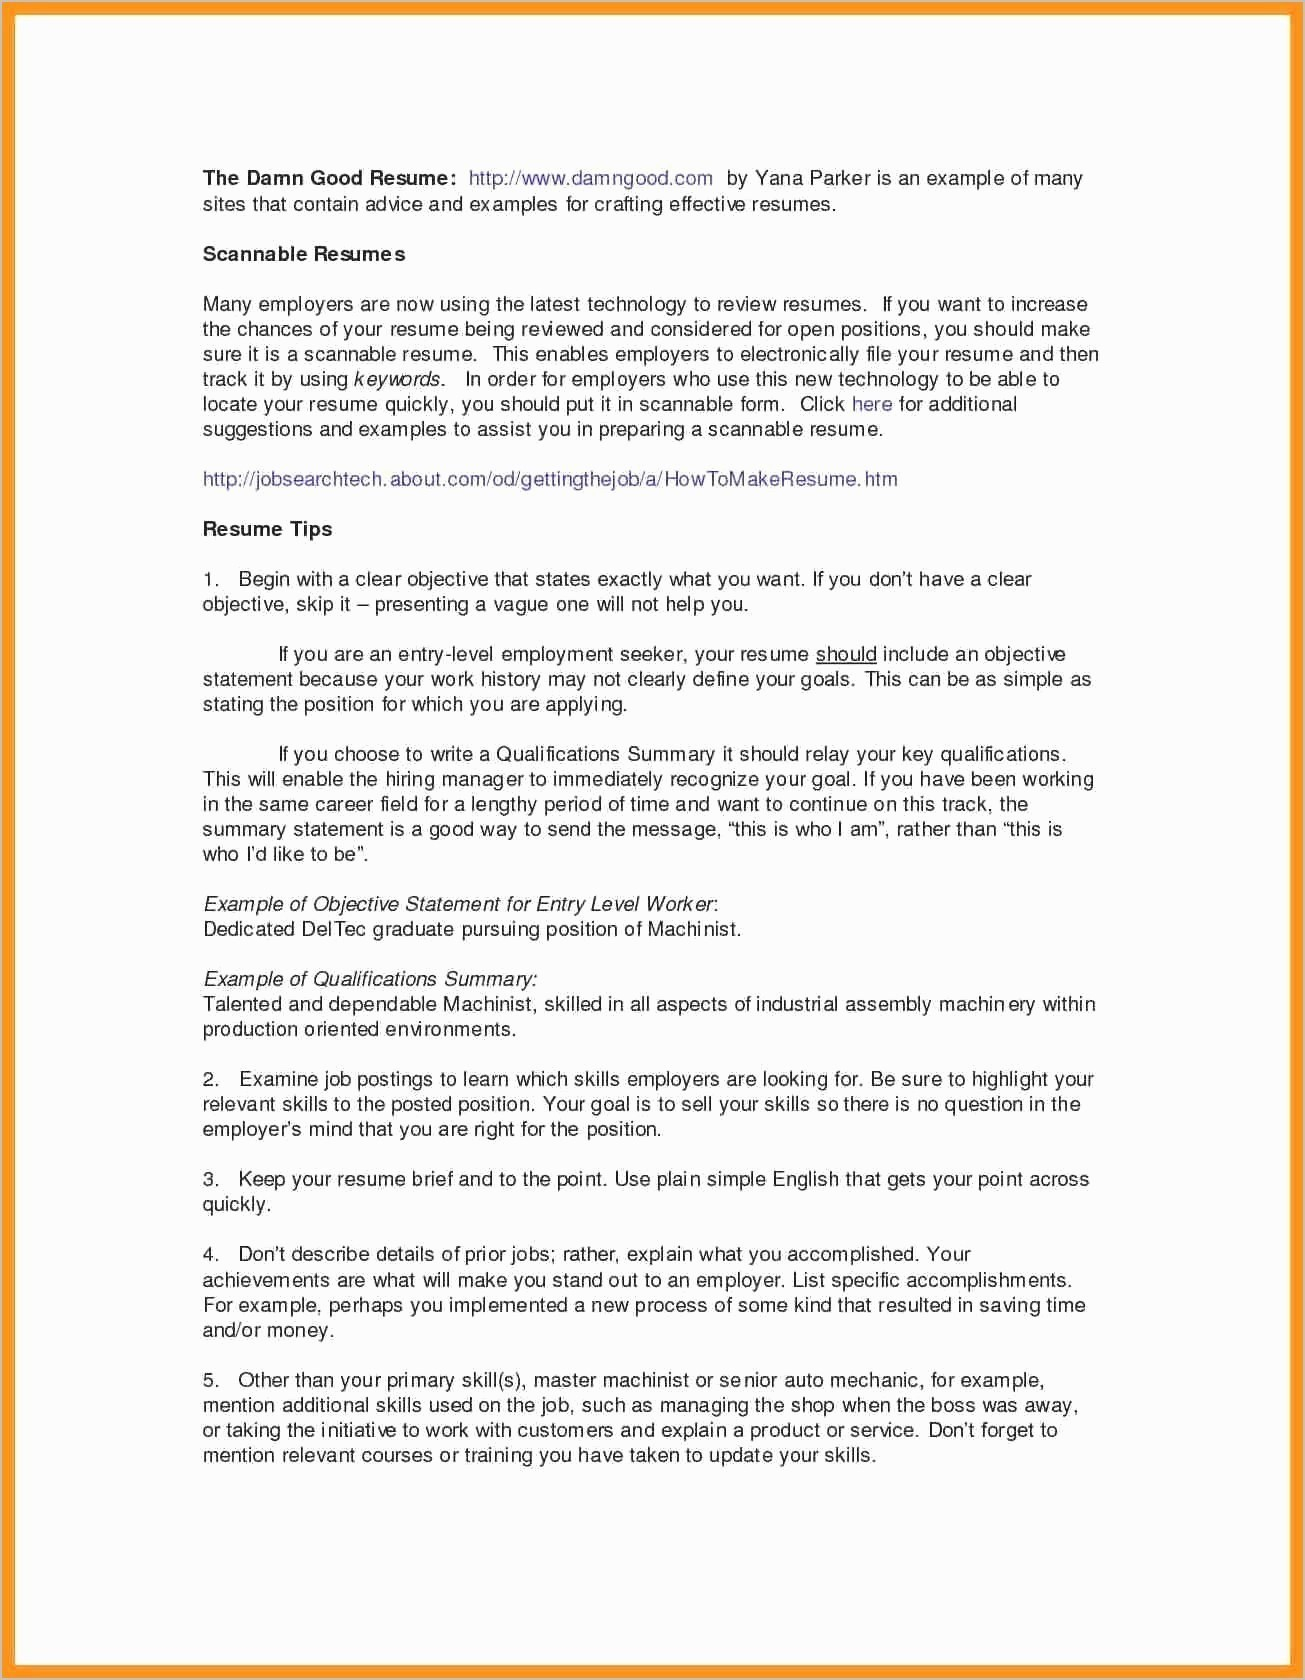 healthcare coo resume example-Healthcare Coo Resume 25 Healthcare Coo Resume 12-l